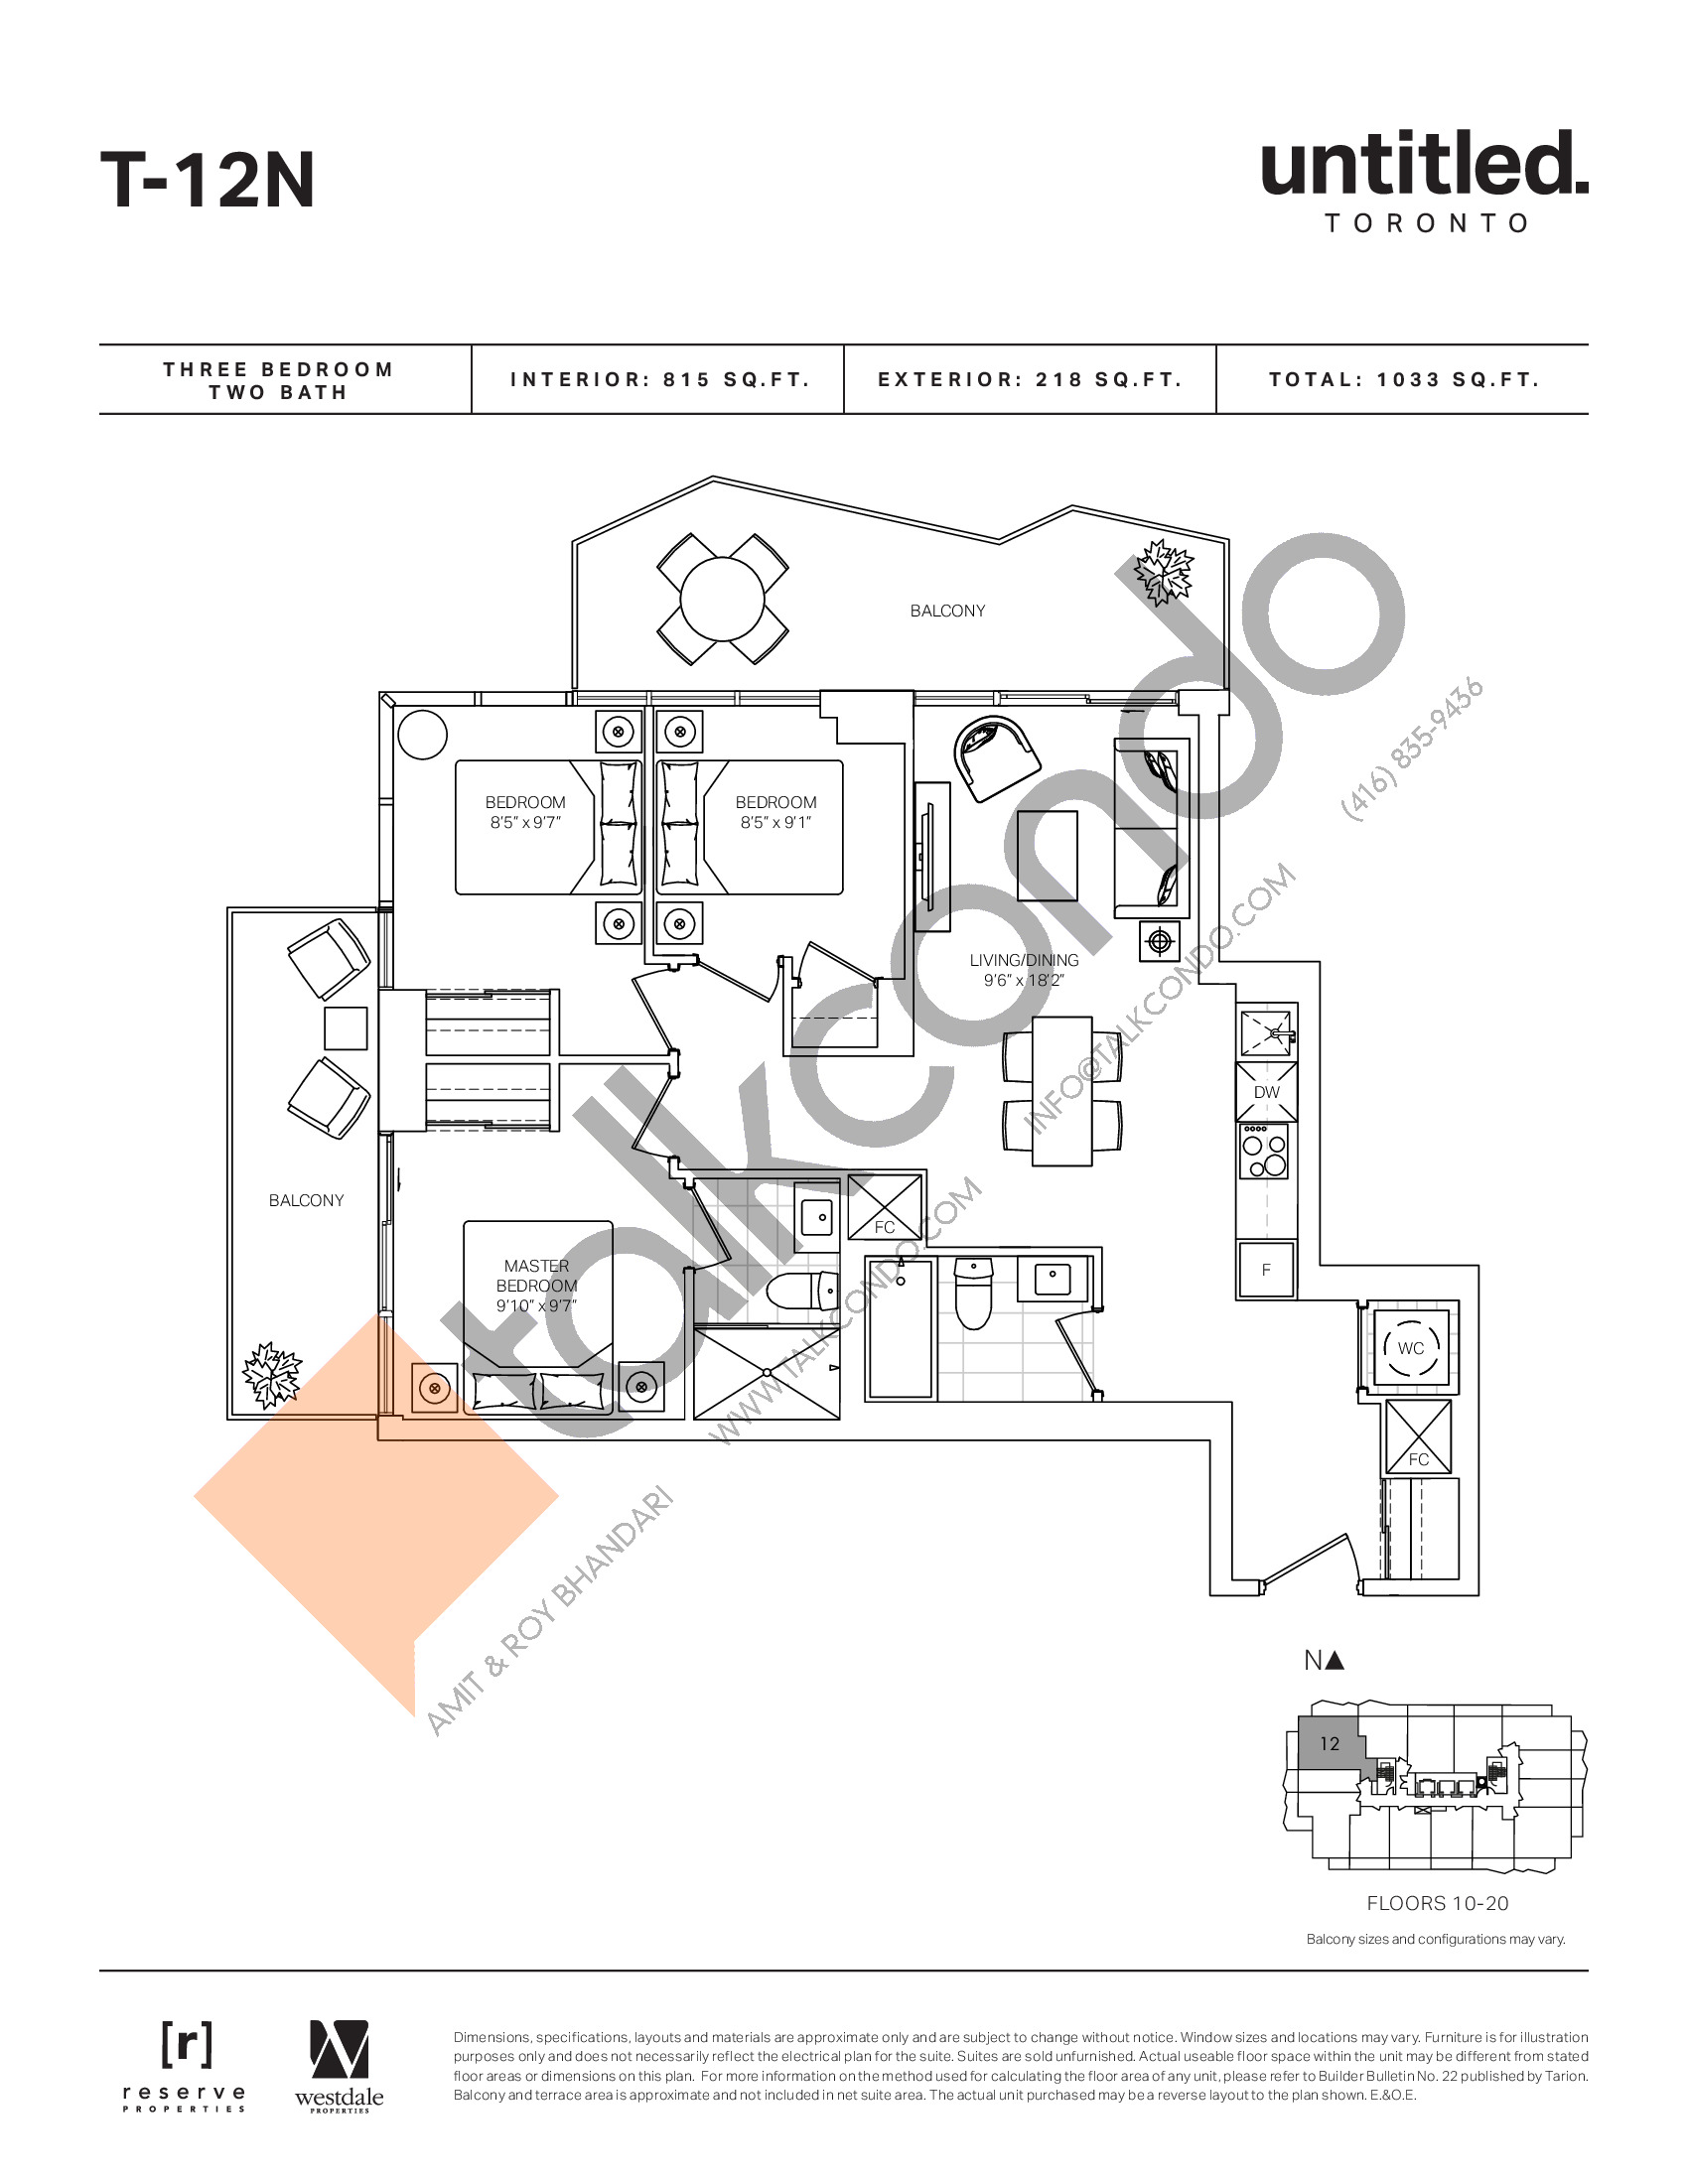 T-12N Floor Plan at Untitled North Tower Condos - 815 sq.ft